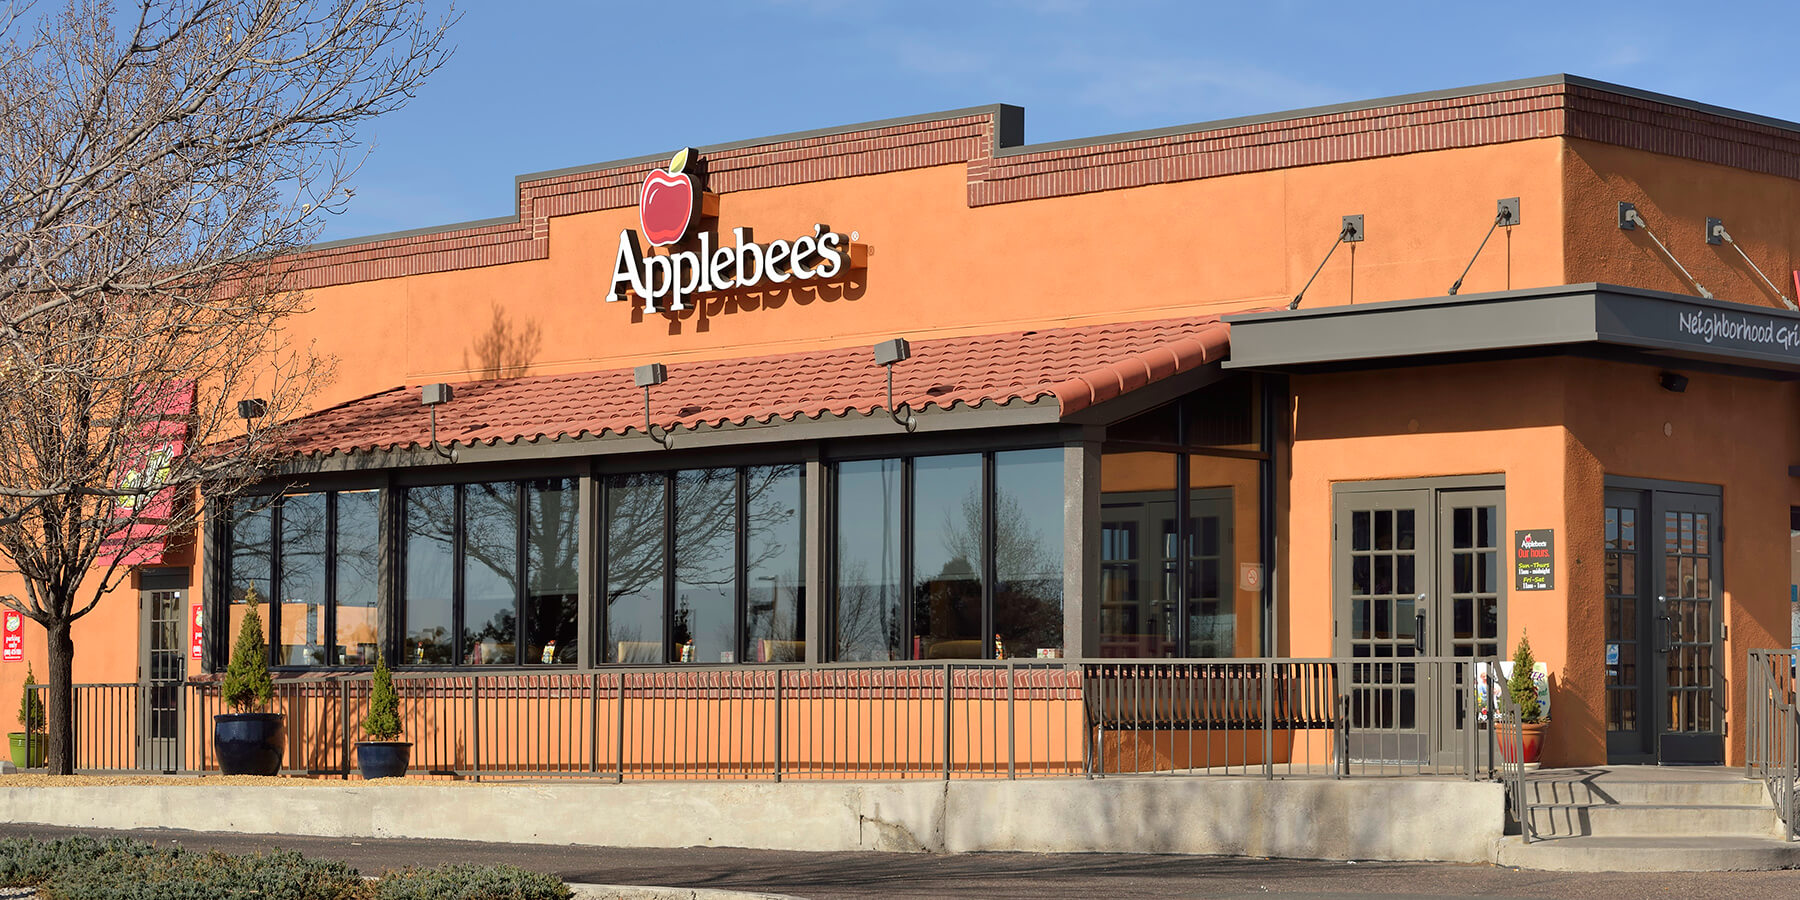 VERTEX, Environmental & Property Due Diligence for Applebee's Acquisition 22518